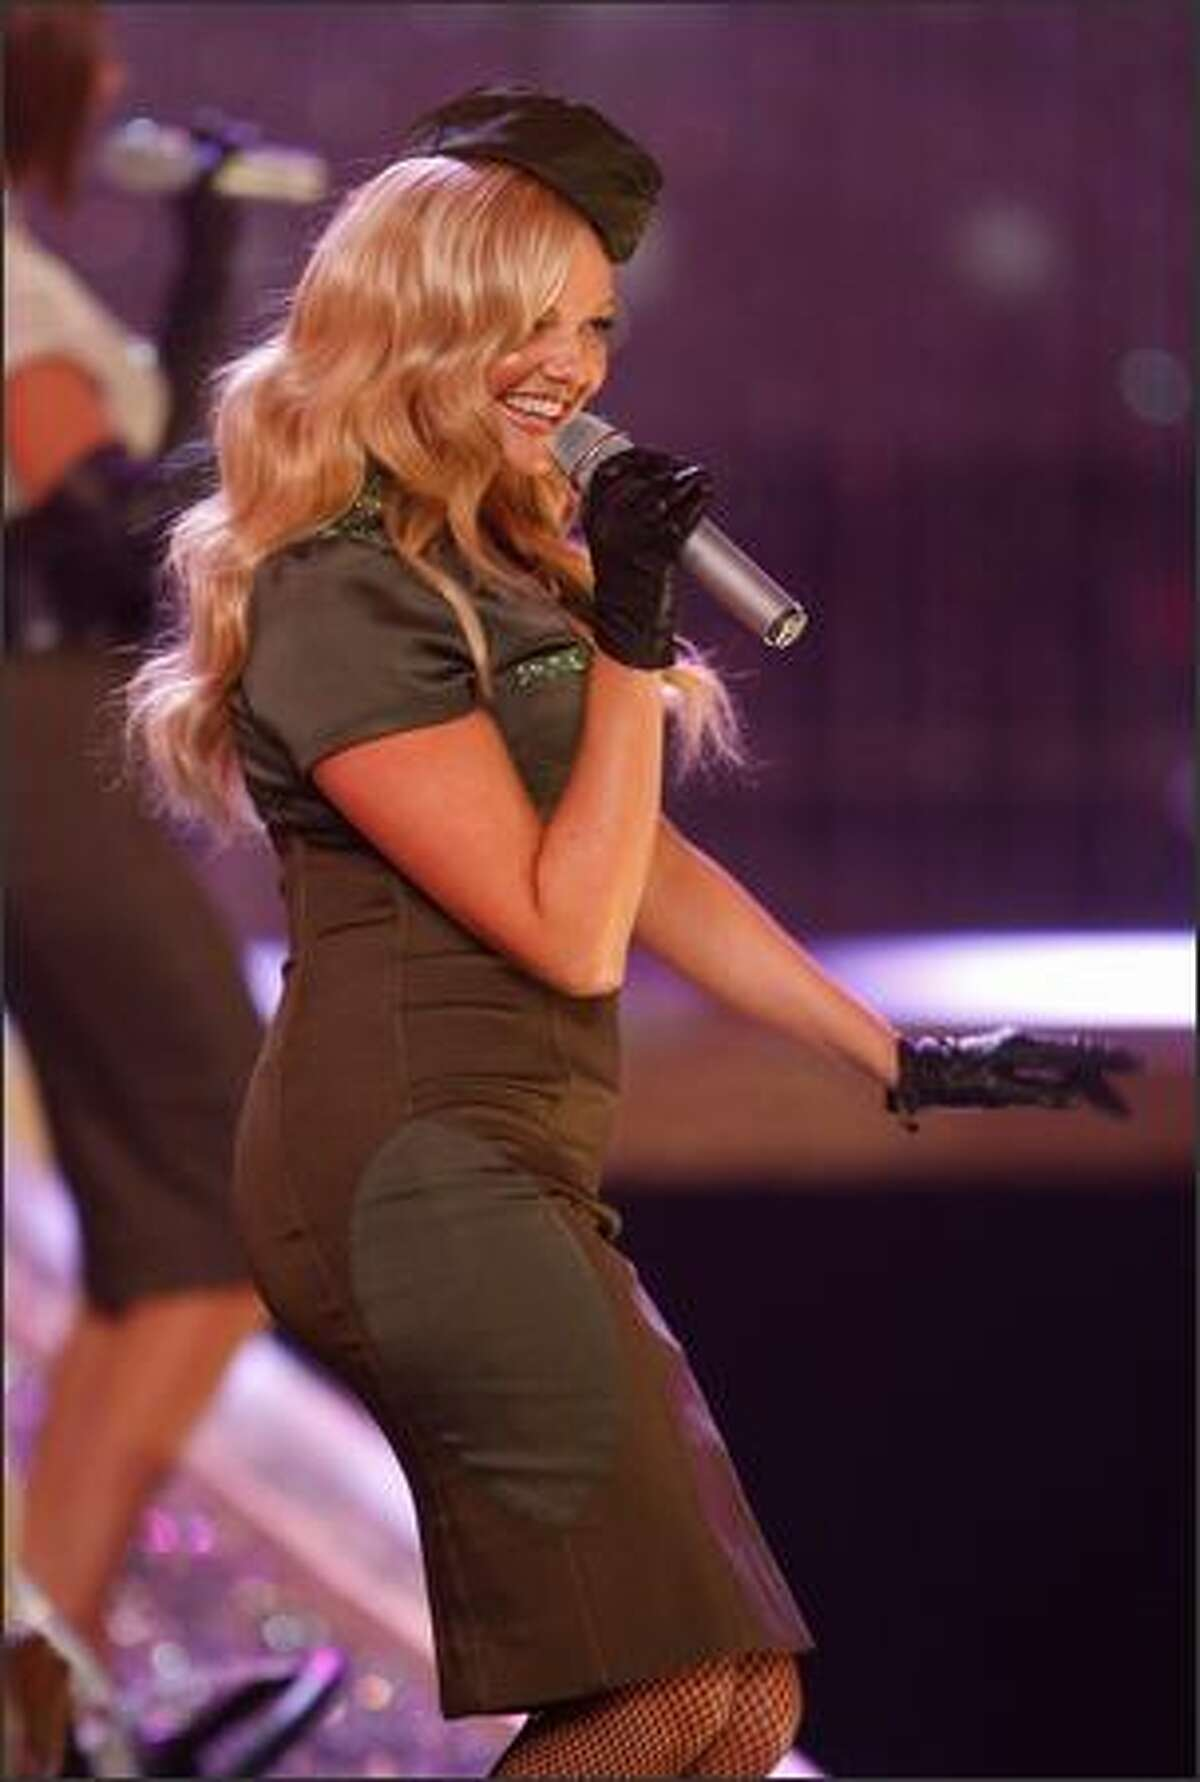 Singer Emma Bunton aka Baby Spice performs with the Spice Girls.